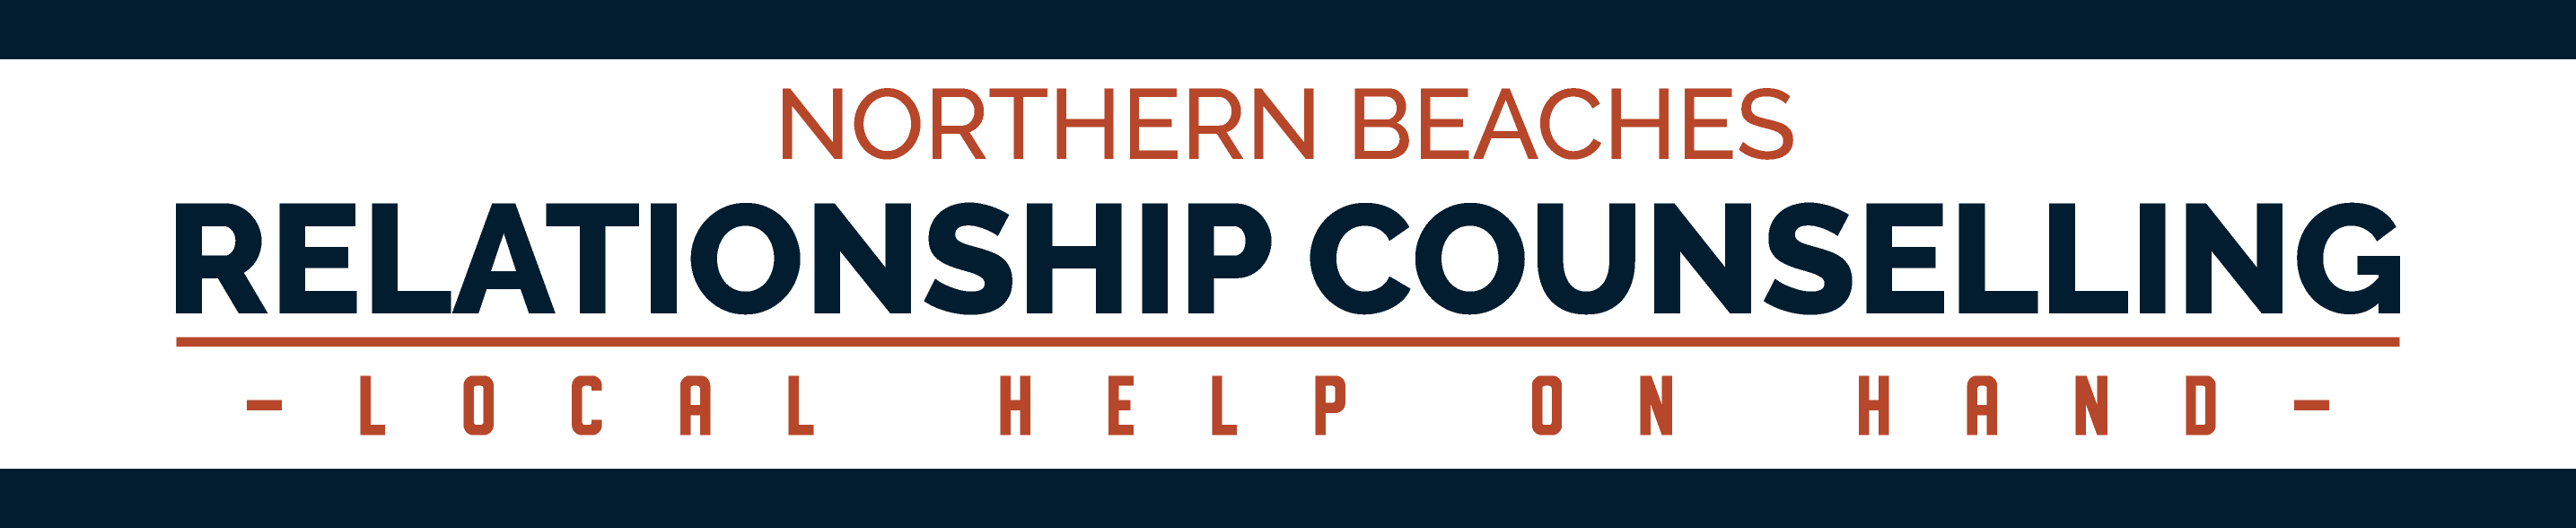 Northern Beaches Relationship Counselling Logo